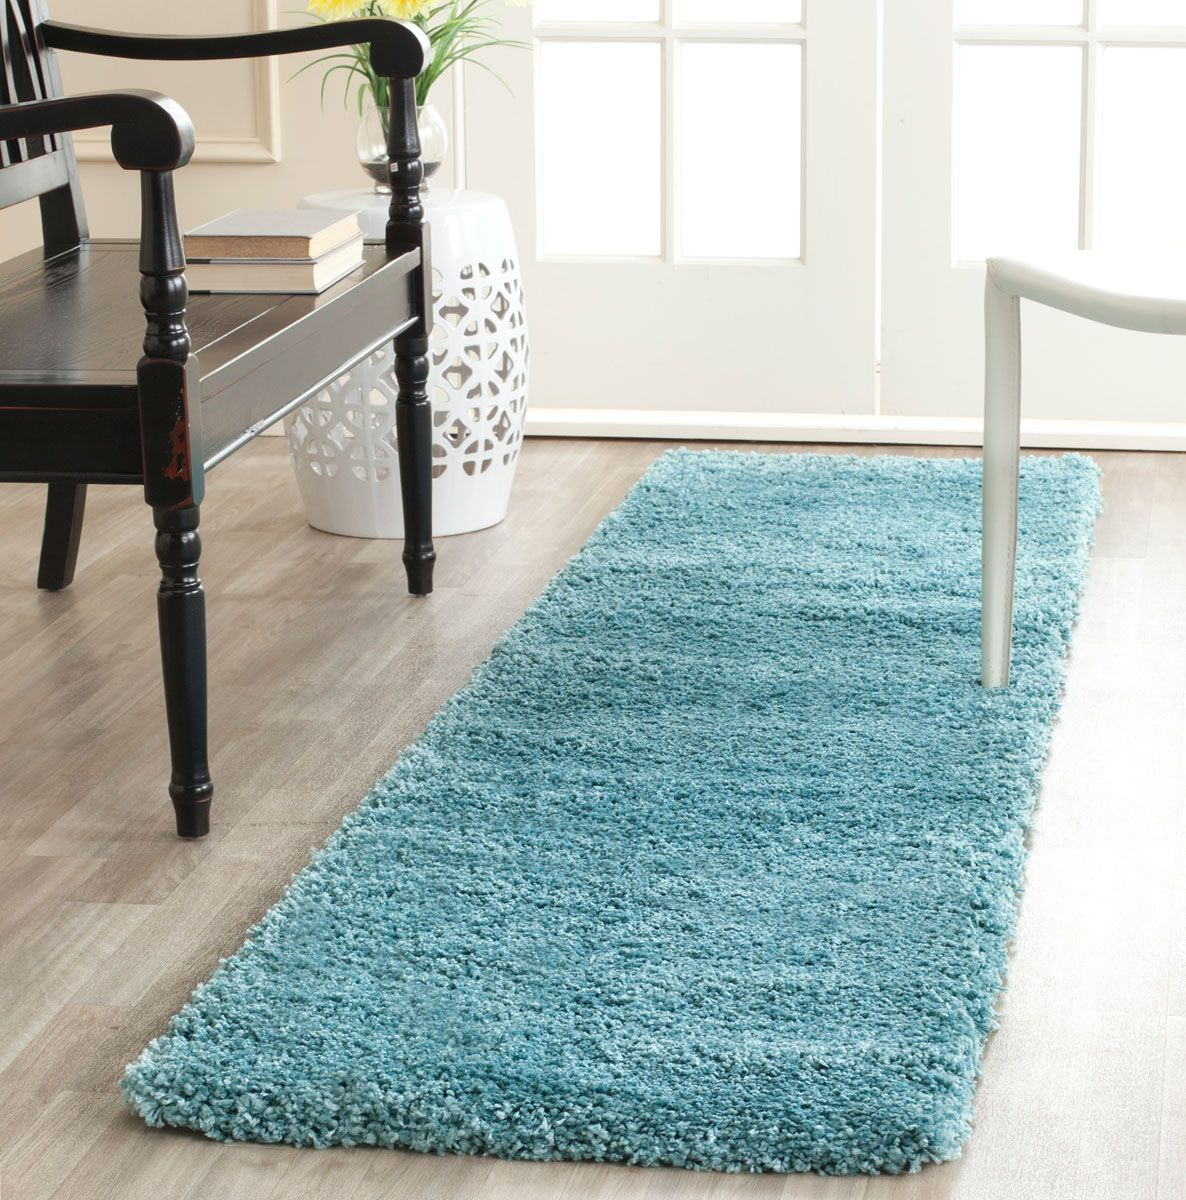 Shag Collection SG180-6060 Color: Aqua Blue  - #safavieh #safaviehrugs #safaviehrunners #rugrunners #rugs #hallwayrugs #entrywayrugs #staircaserugs #staircasecarpets #entrywaycarpts #bedroomrugs #livingroomrugs #diningroomrugs #kitchenrugs #hallwaydecor #entrywaydecor #shoprugs #runnercarpets #bluerunnerrug #tauperunnerrug